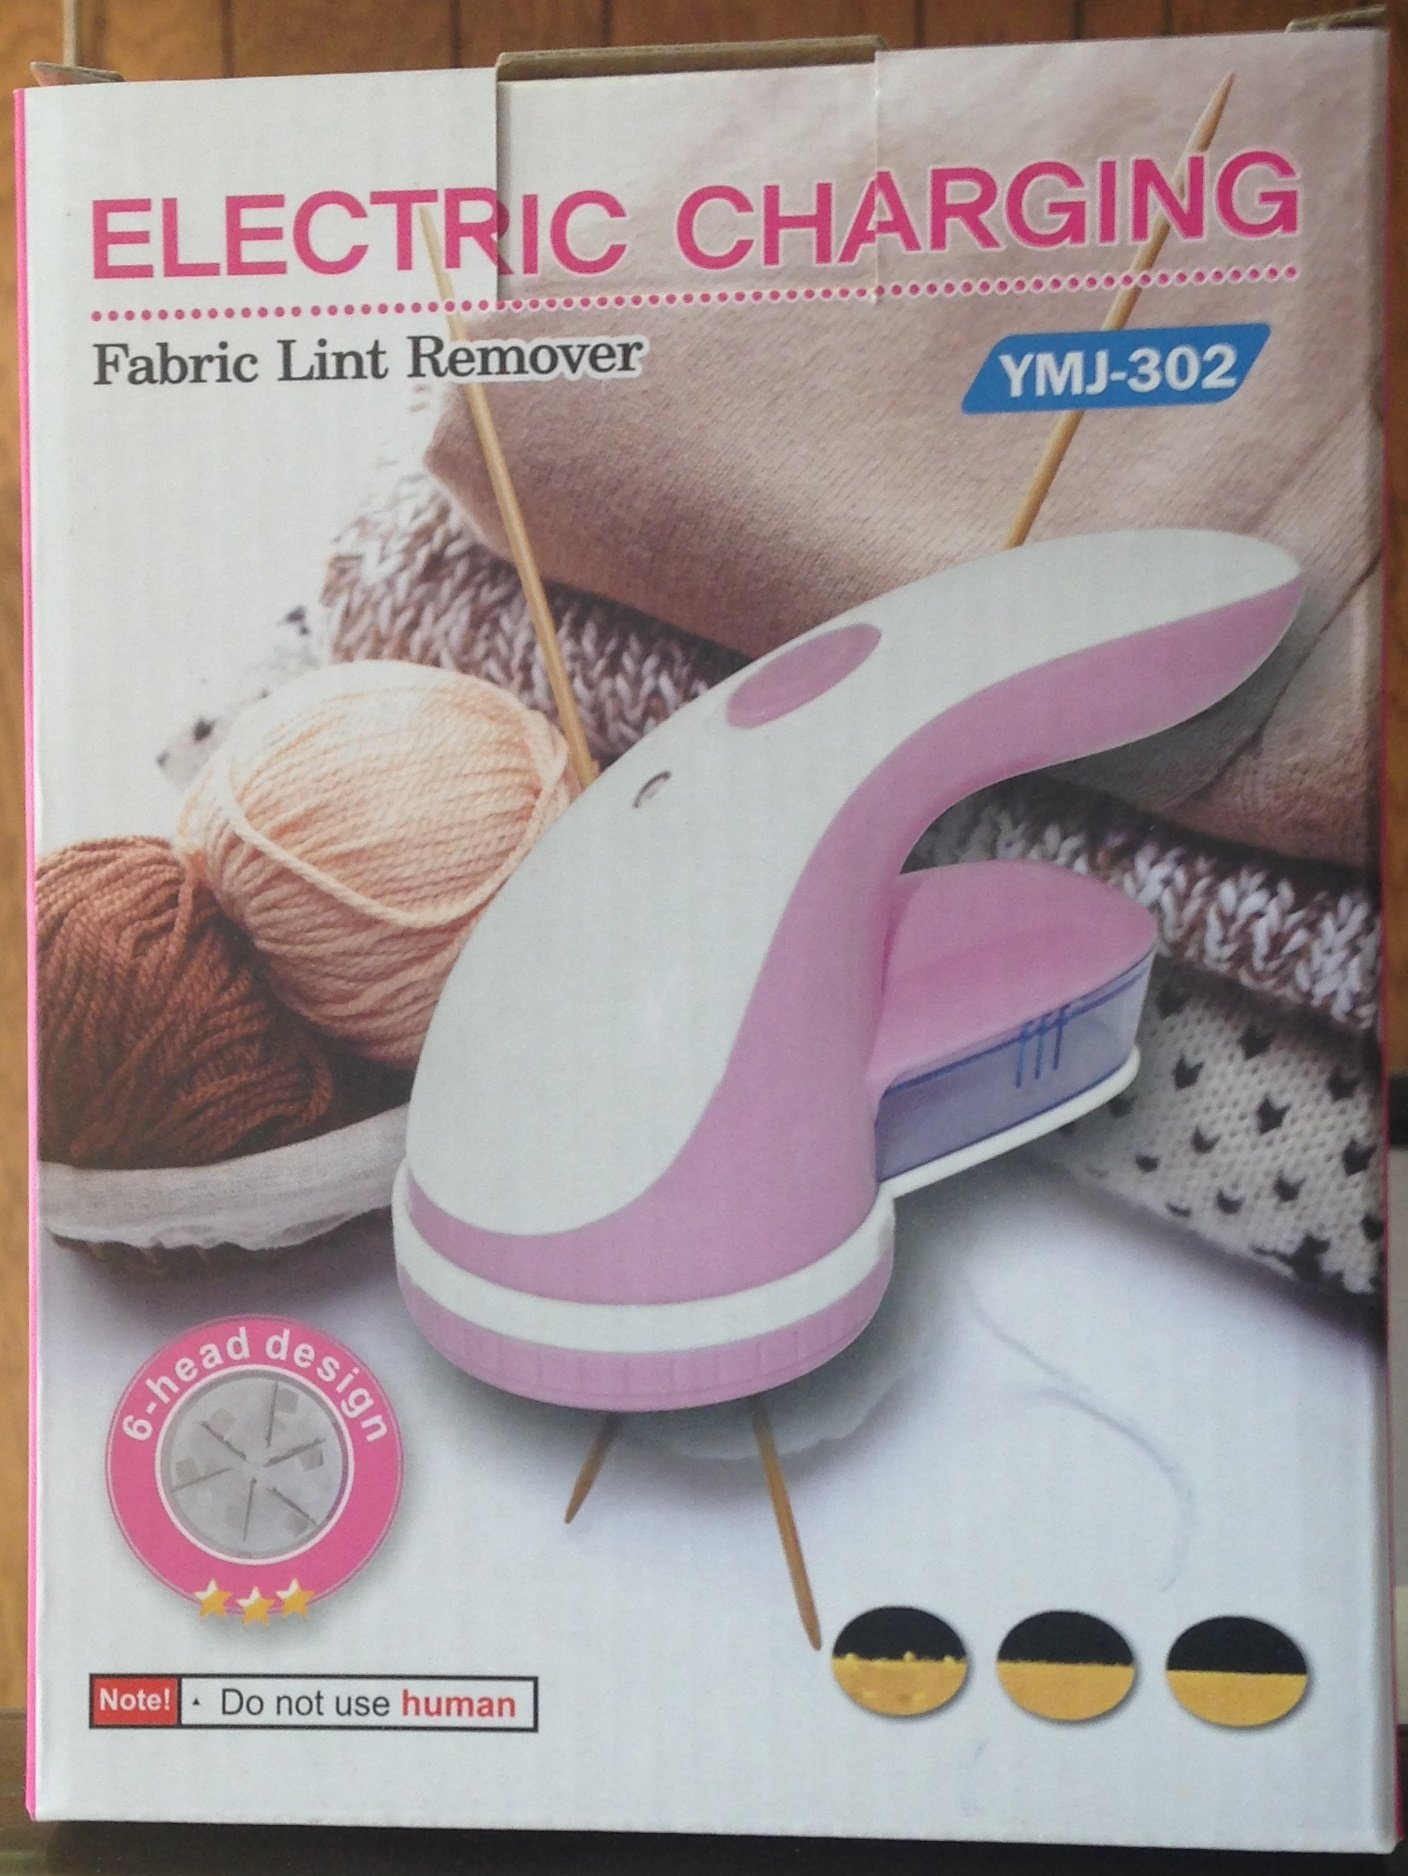 Commercial Fabric Shaver